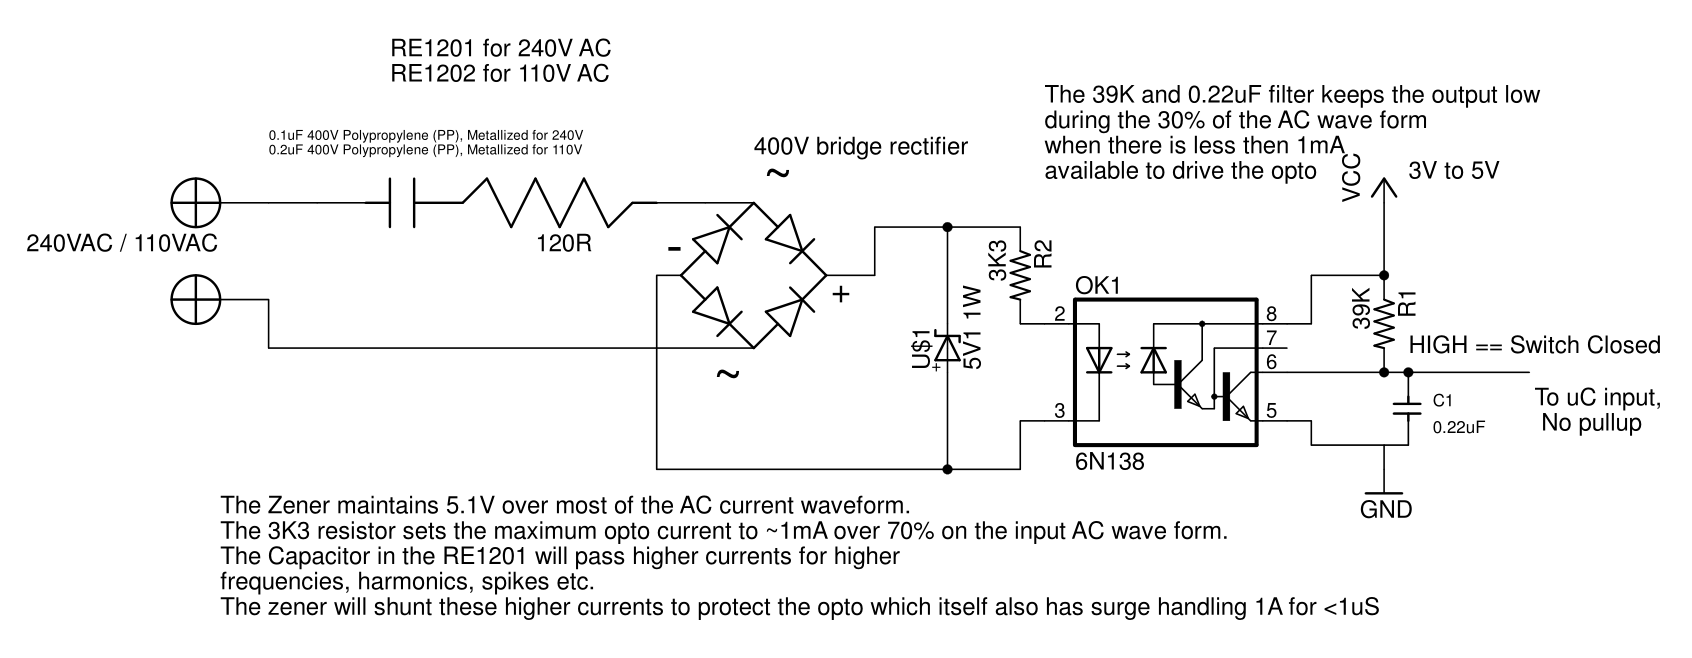 Ac Power Light Switch Monitor Optically Isolated For Circuit